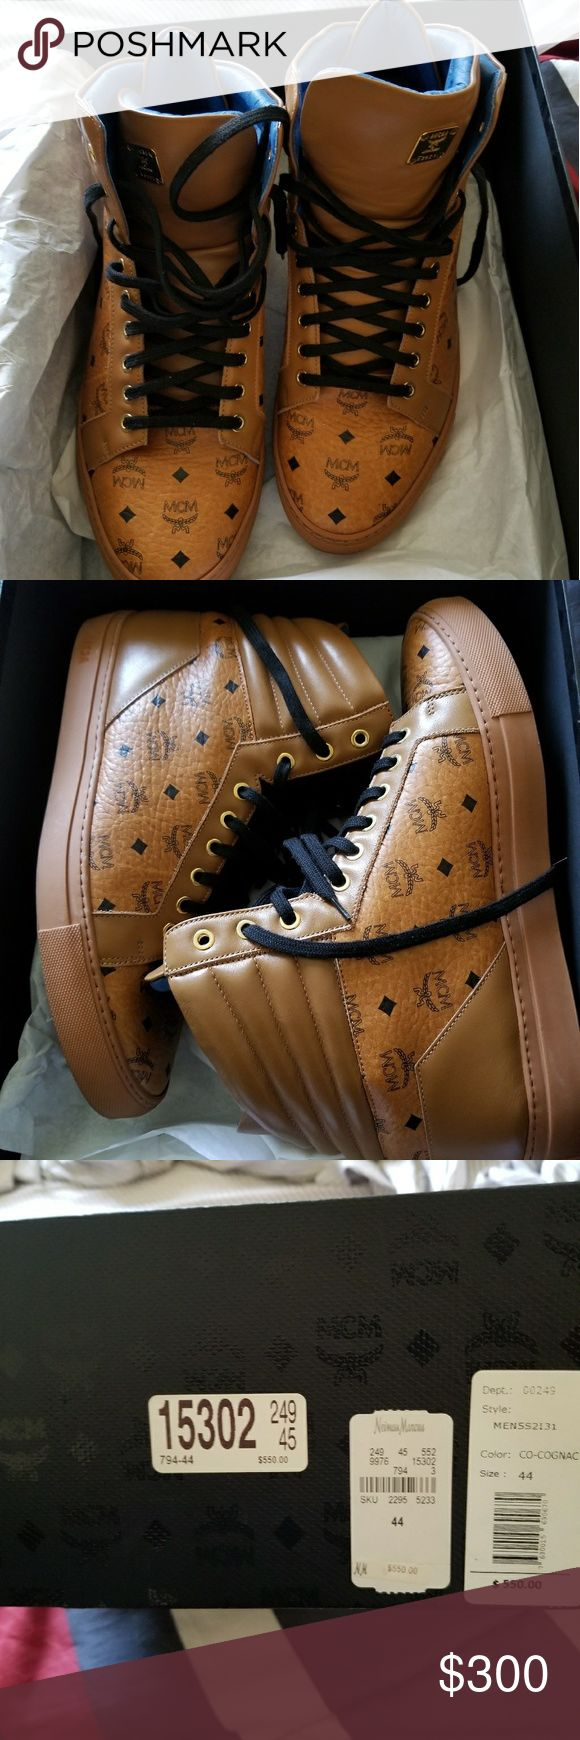 MCM Shoes Size 44 MCM Shoes Sneakers